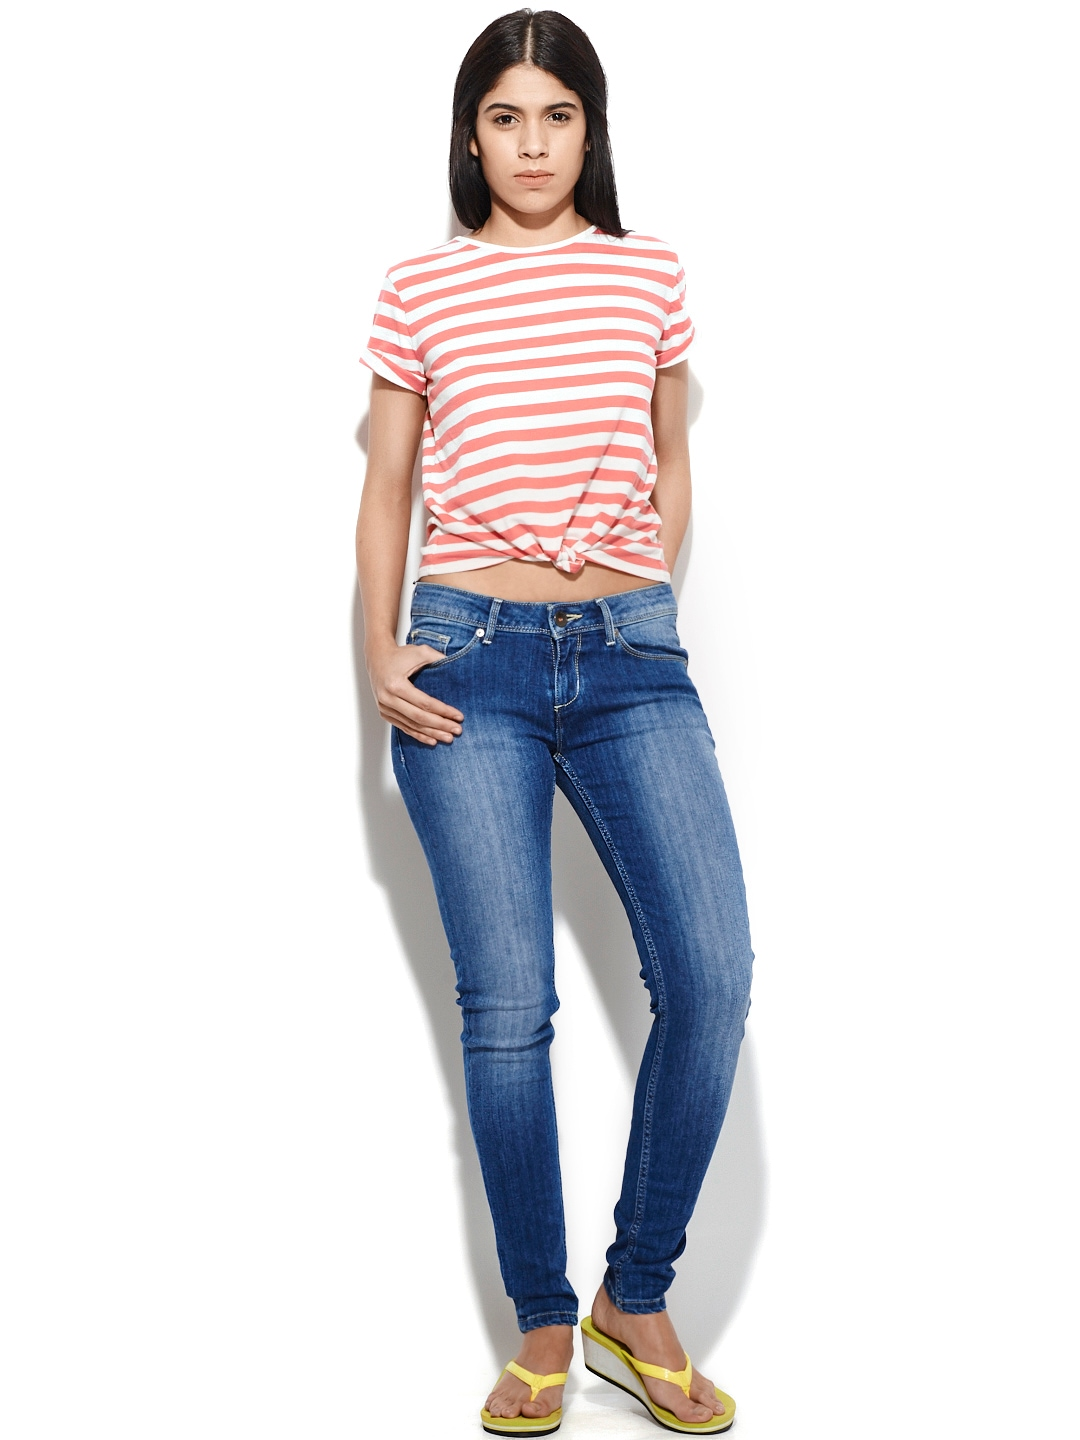 Home Clothing Women Clothing Jeans United Colors of Benetton Jeans